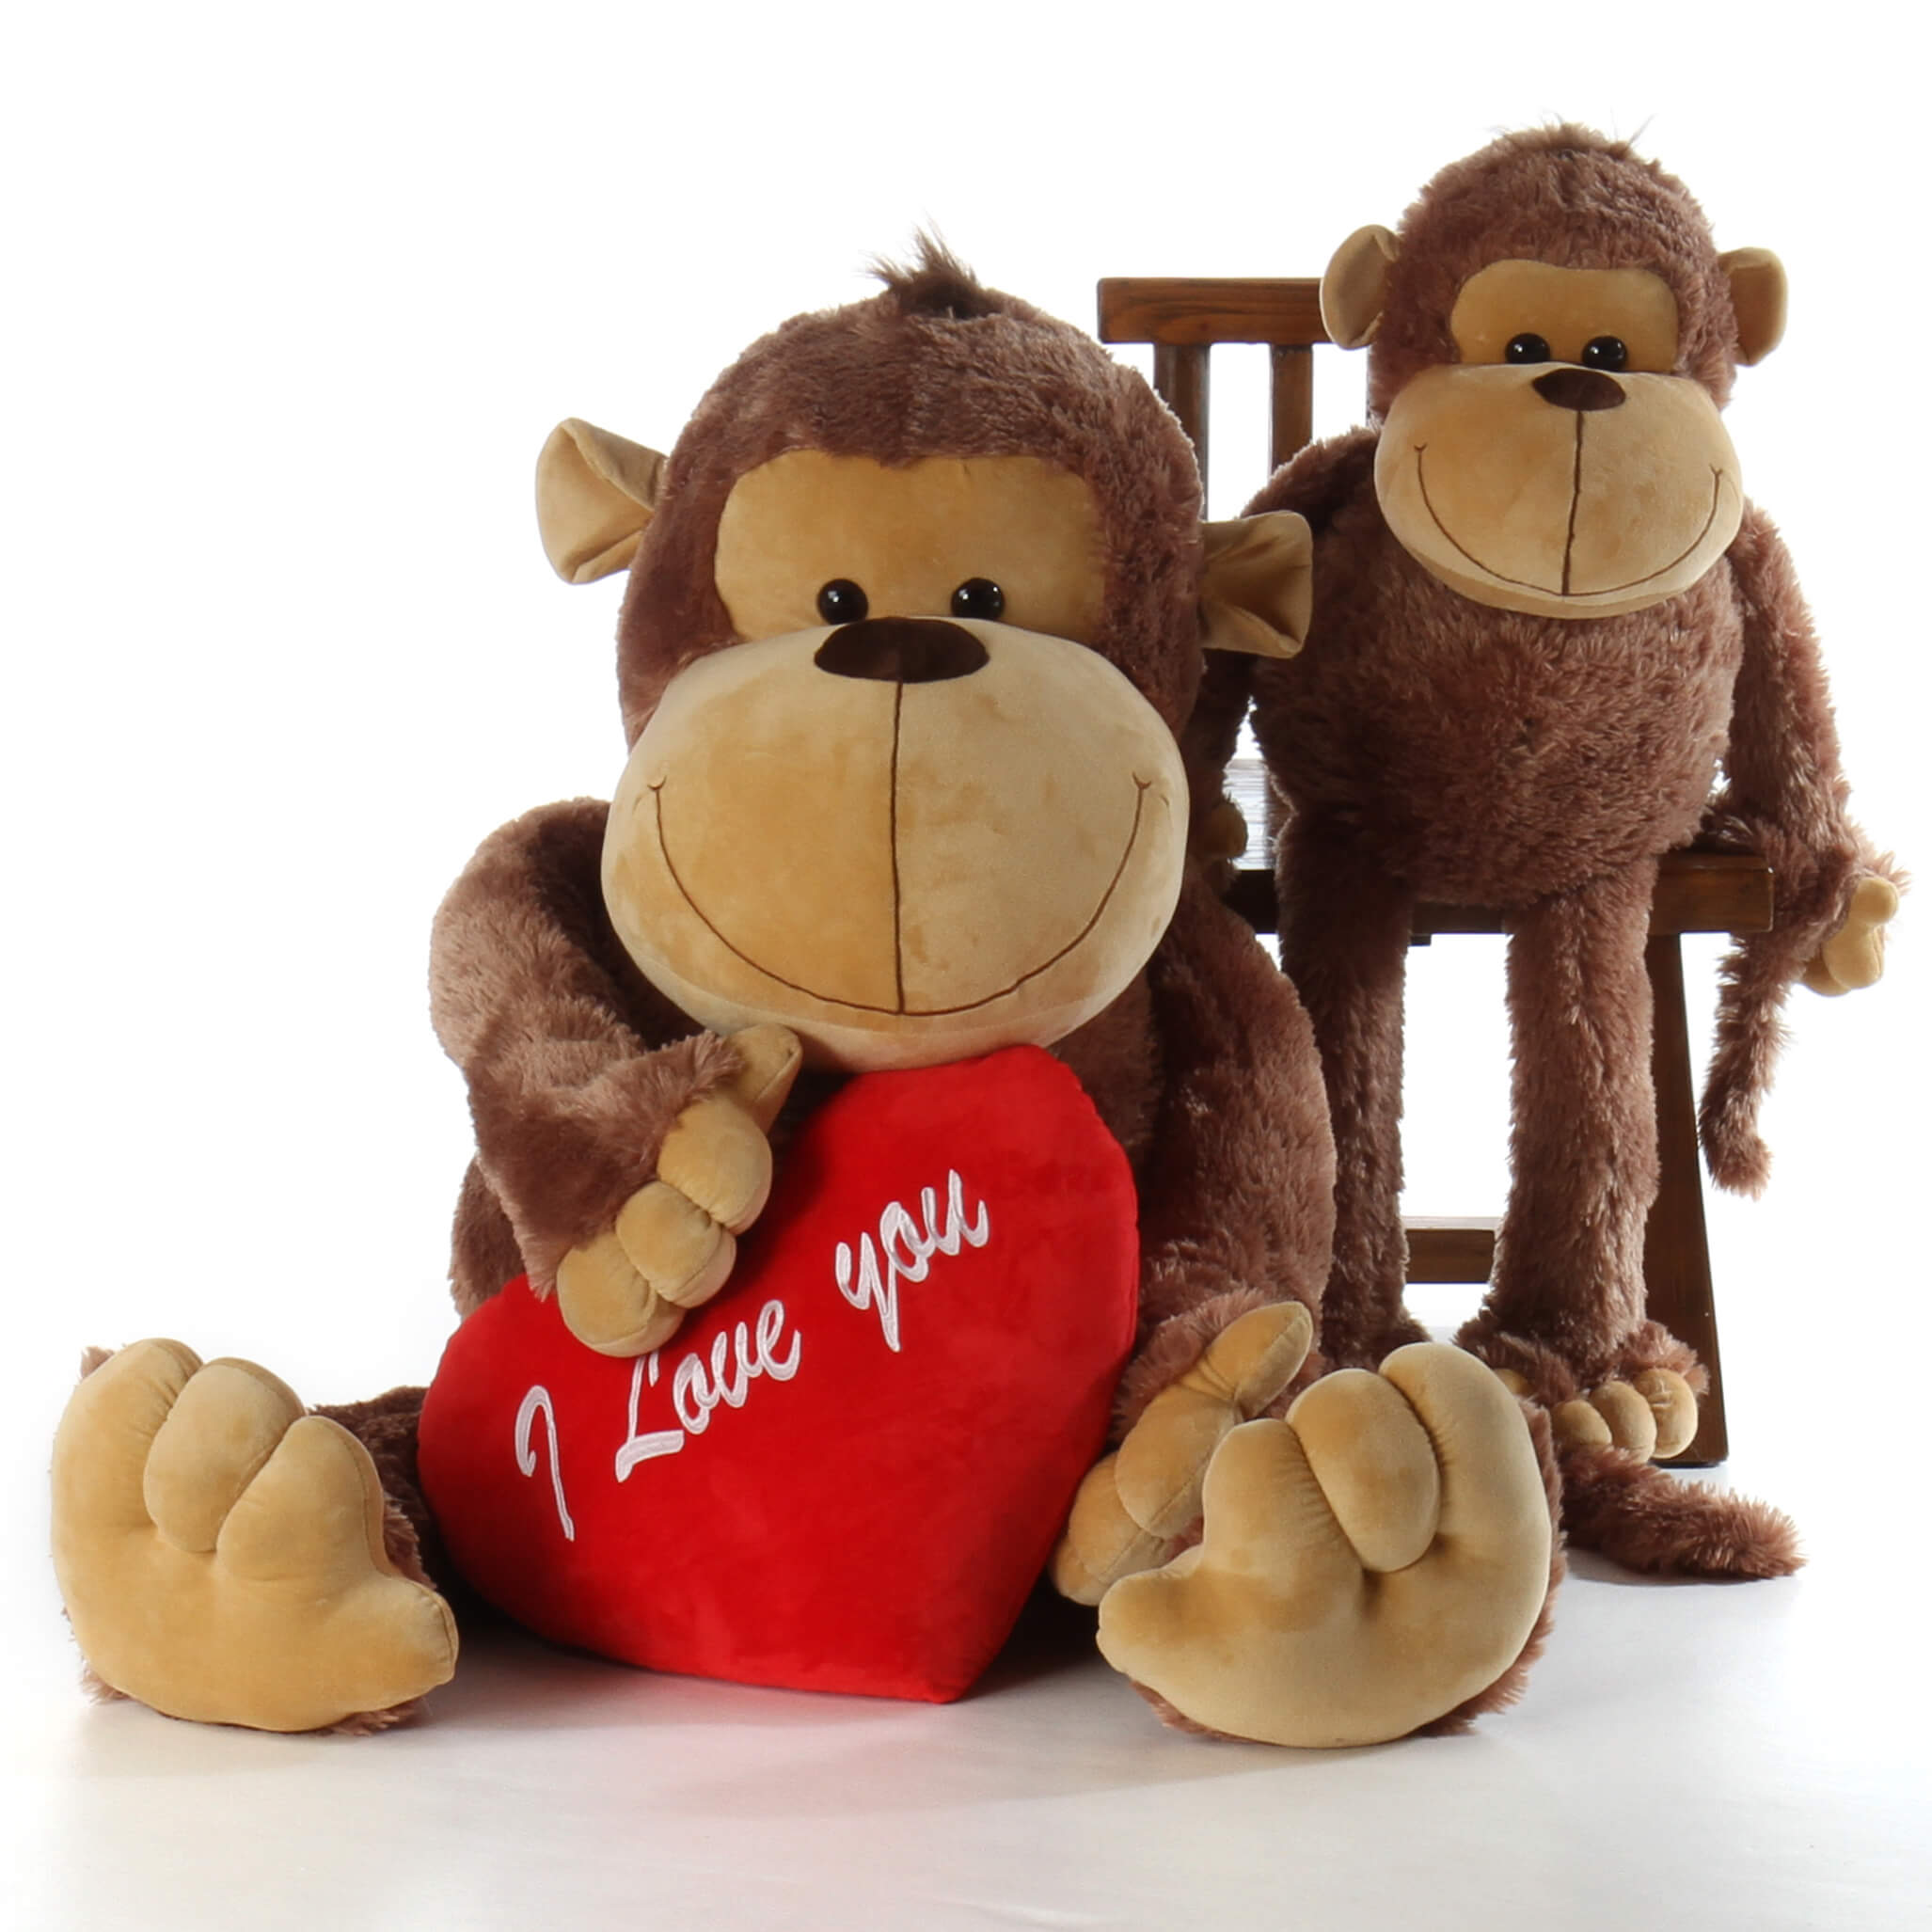 5ft life size stuffed monkey big daddy with i love you heart pillow from giant teddy brand. Black Bedroom Furniture Sets. Home Design Ideas